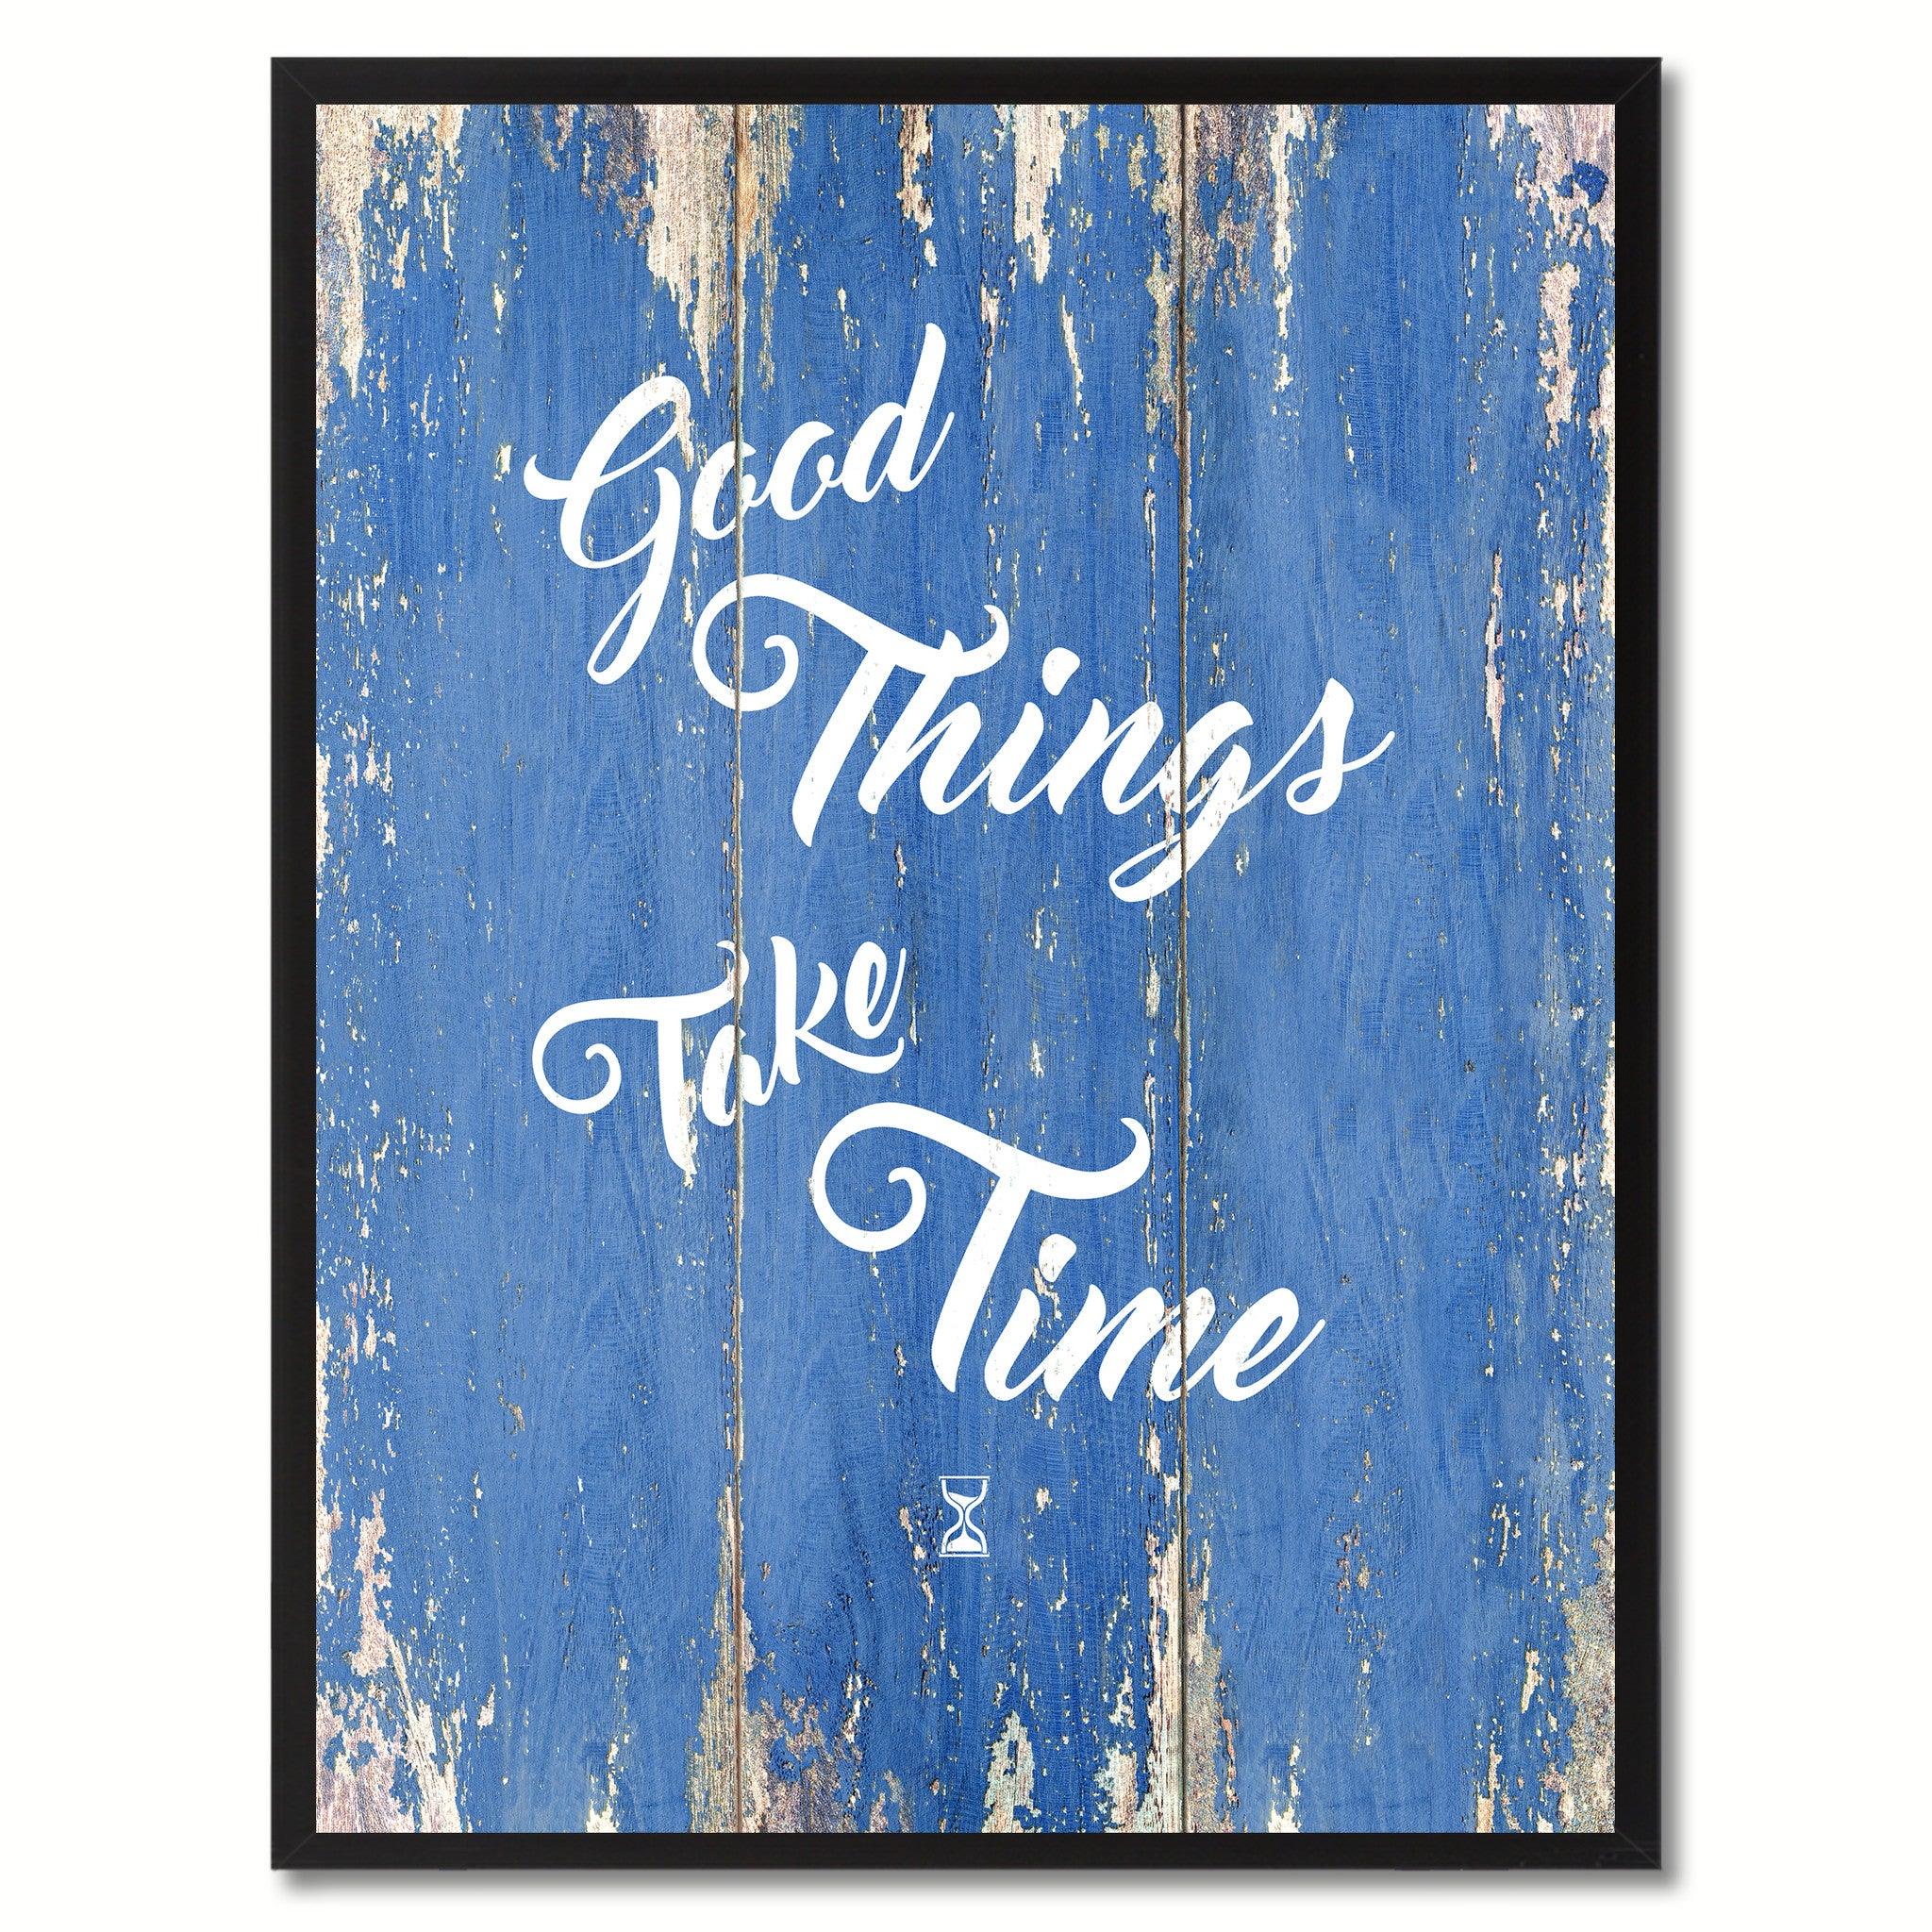 Good Things Take Time Saying Canvas Print, Black Picture Frame Home Decor Wall Art Gifts